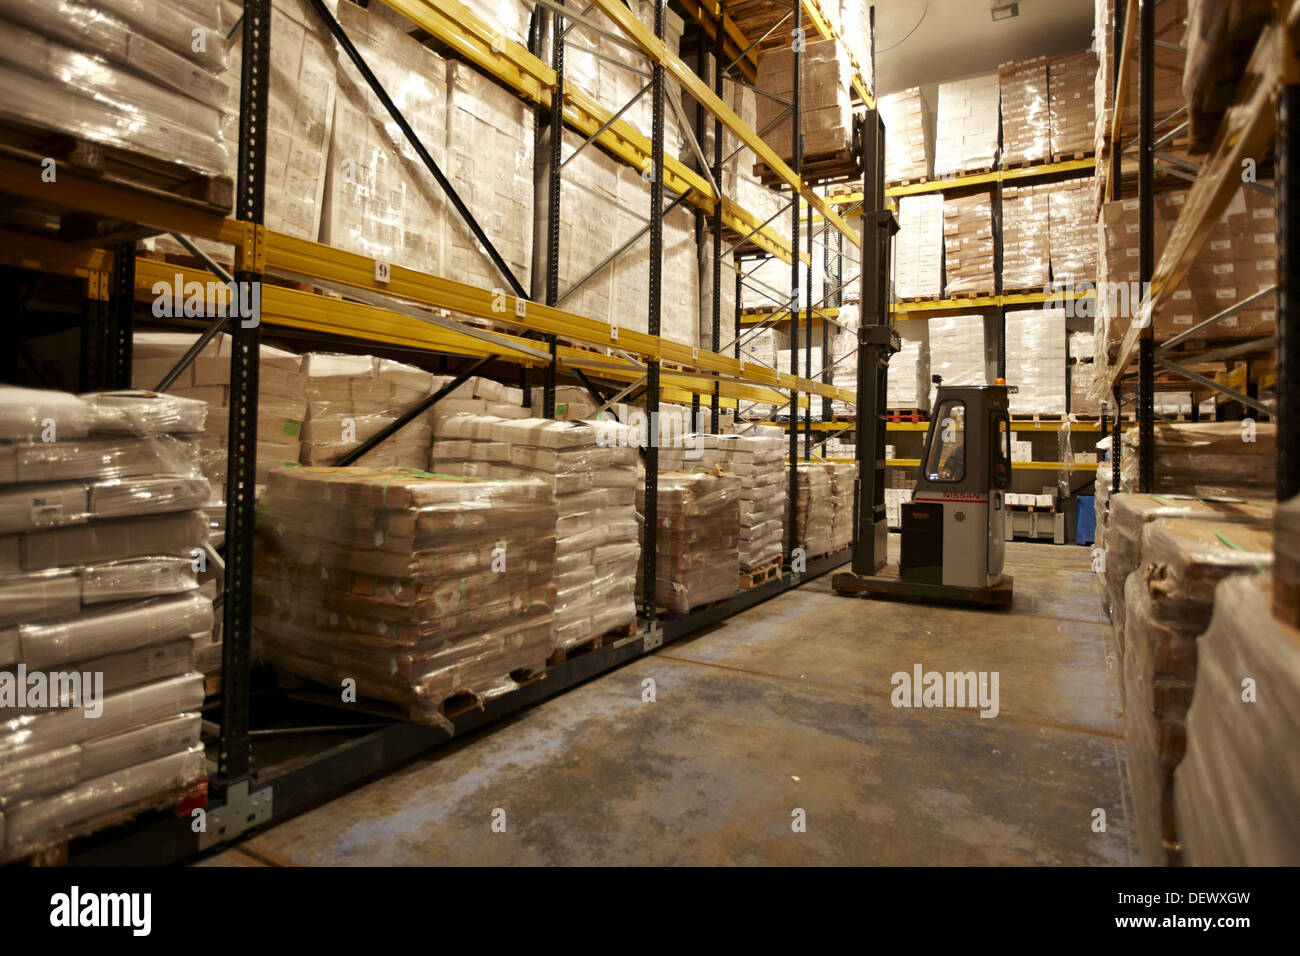 Cold-storage room refrigerated and frozen salt cod distribution & Cold-storage room refrigerated and frozen salt cod distribution ...